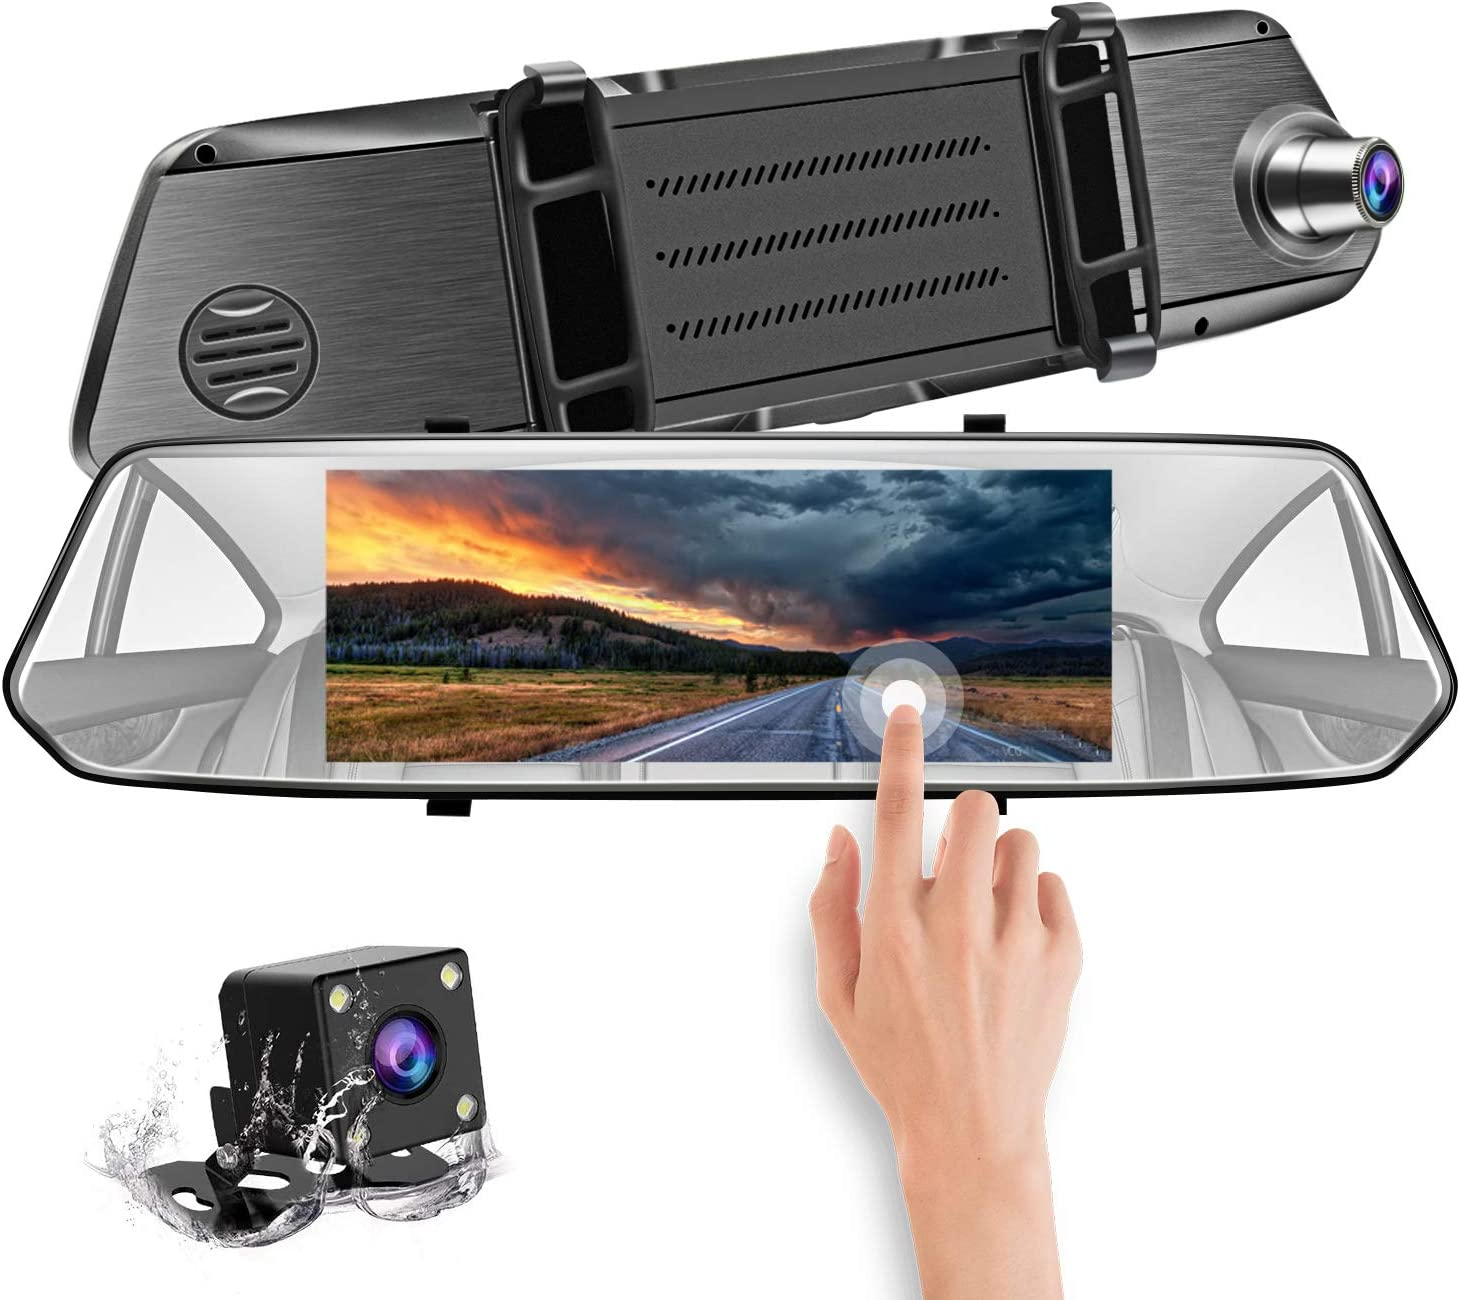 CHICOM Mirror Dash Cam 7 Inch Full HD1080P Dual Lens Backup Camera, Front and Rearview Car Dvr with Motion Detection G-Sensor Night Version Loop Recording Parking Monitoring and Reversing Assistance